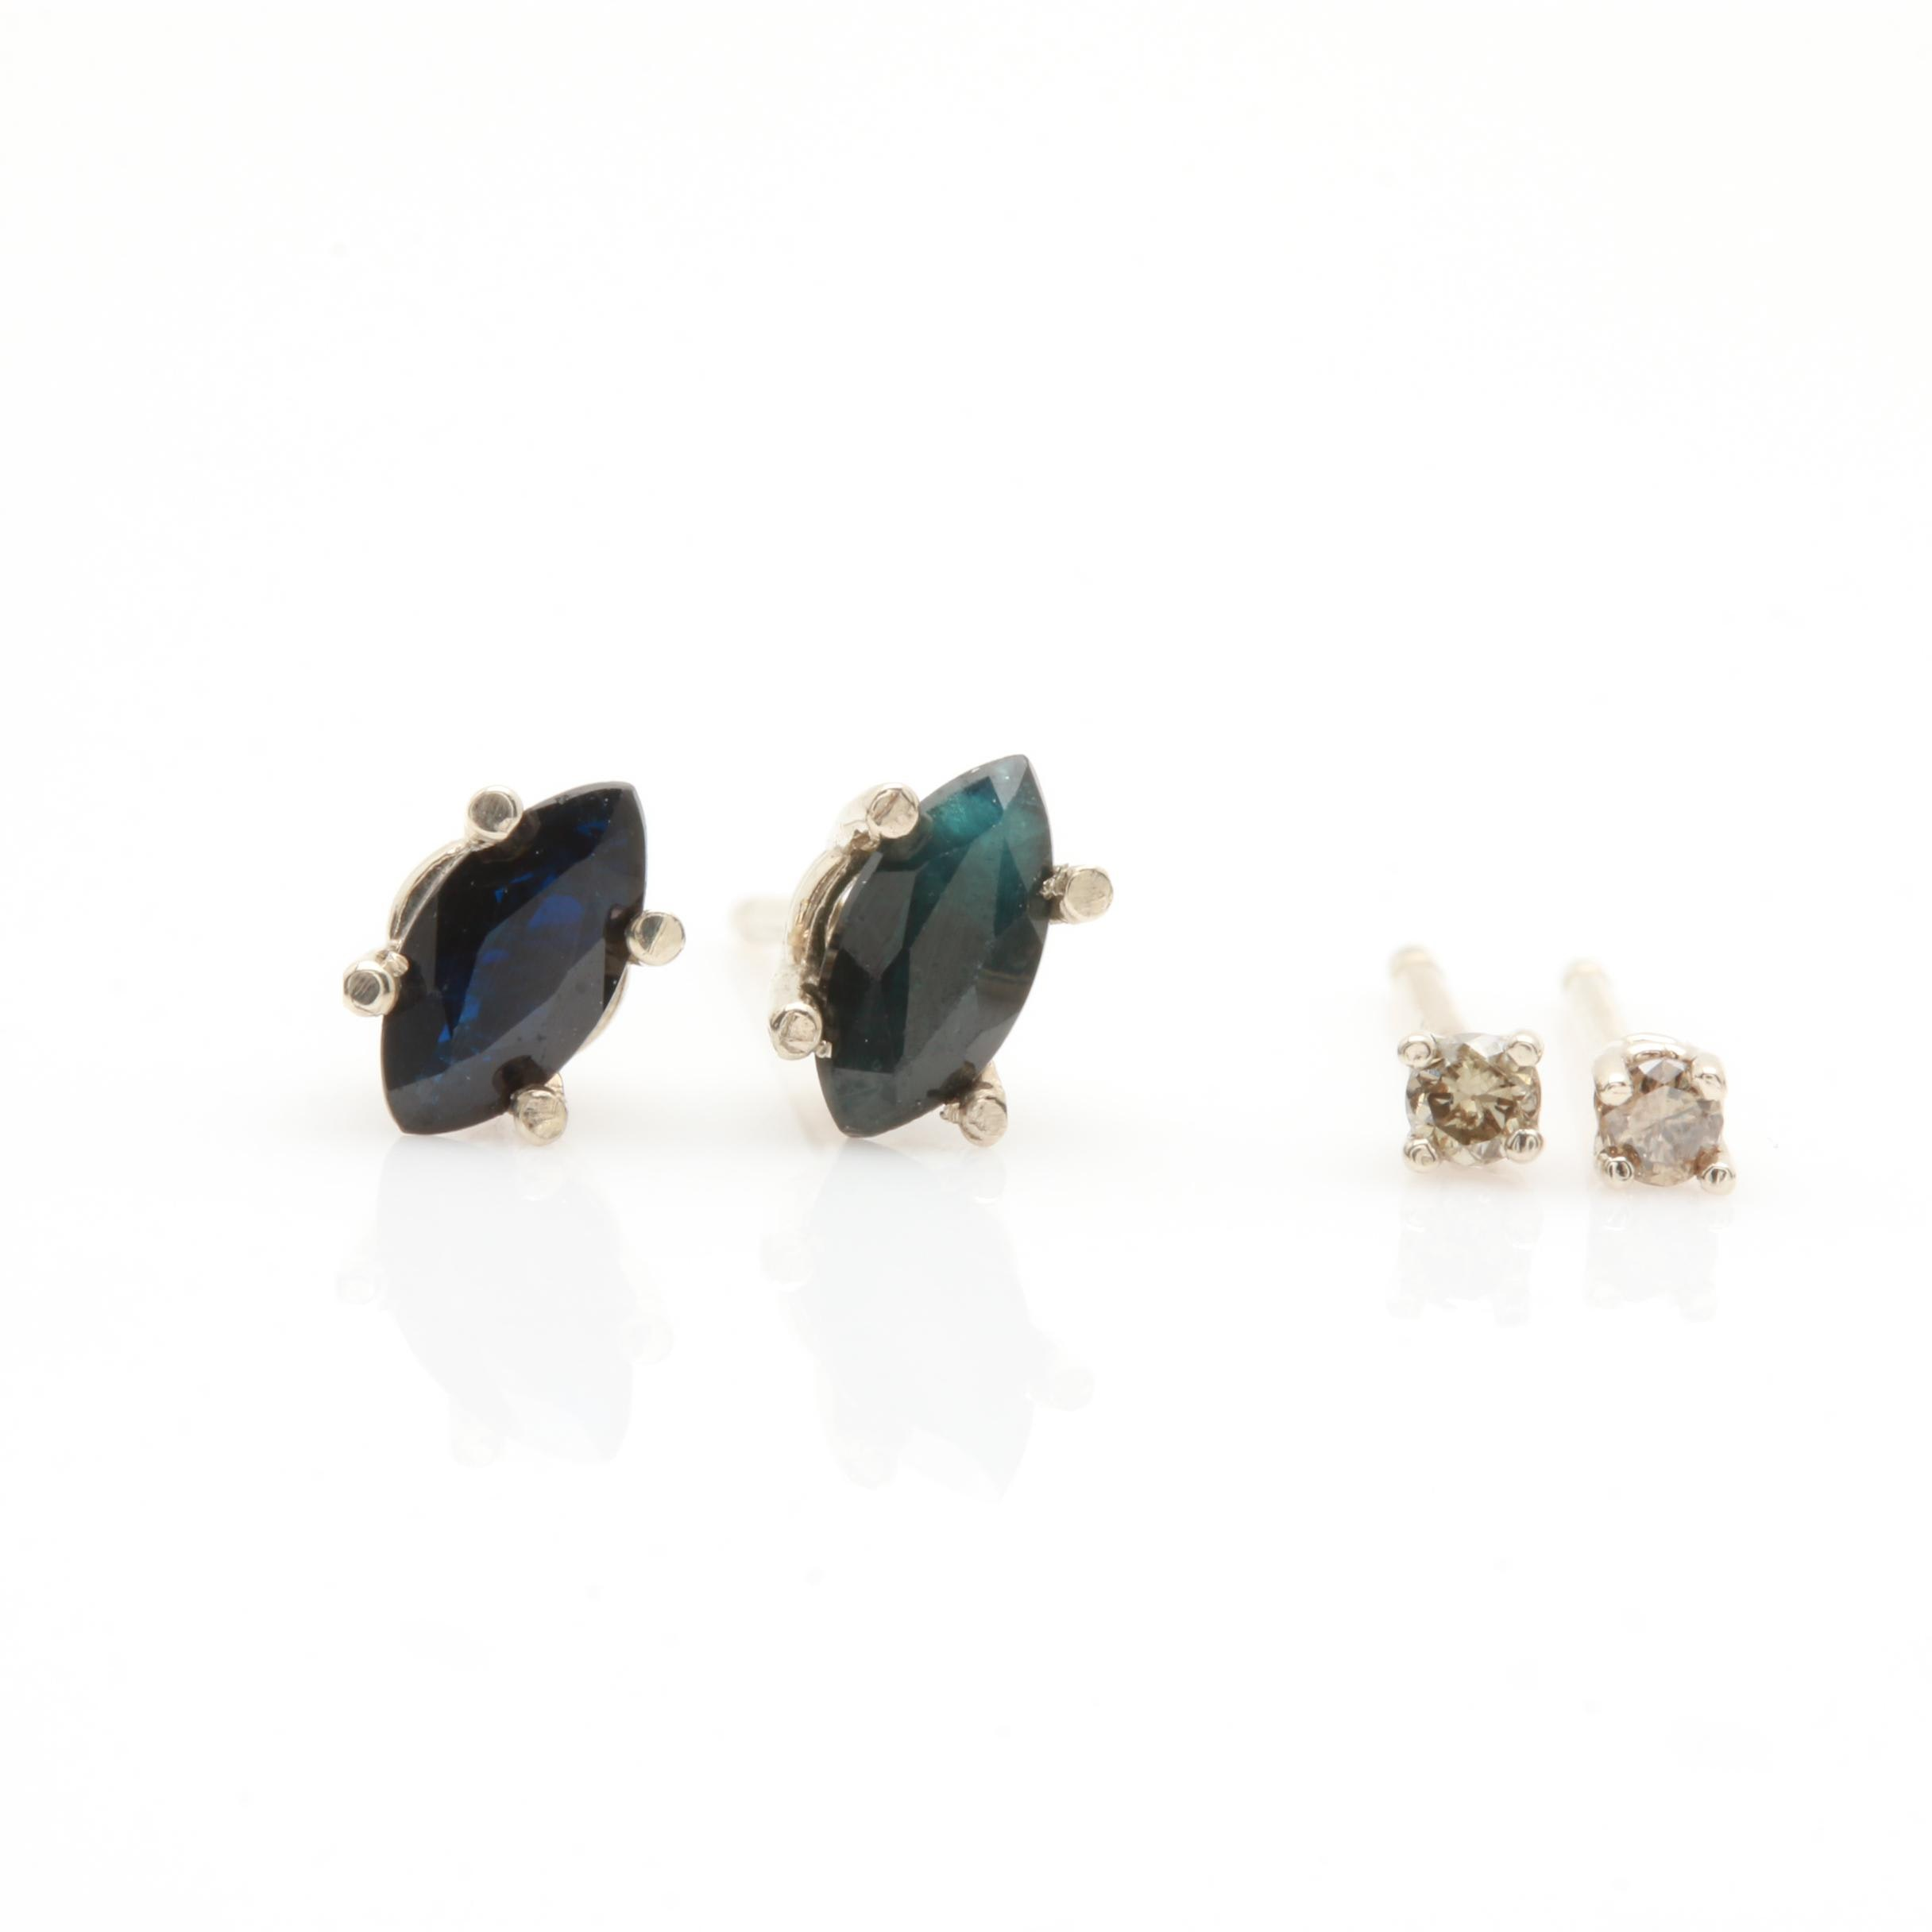 14K White Gold Diamond and Sapphire Stud Earrings